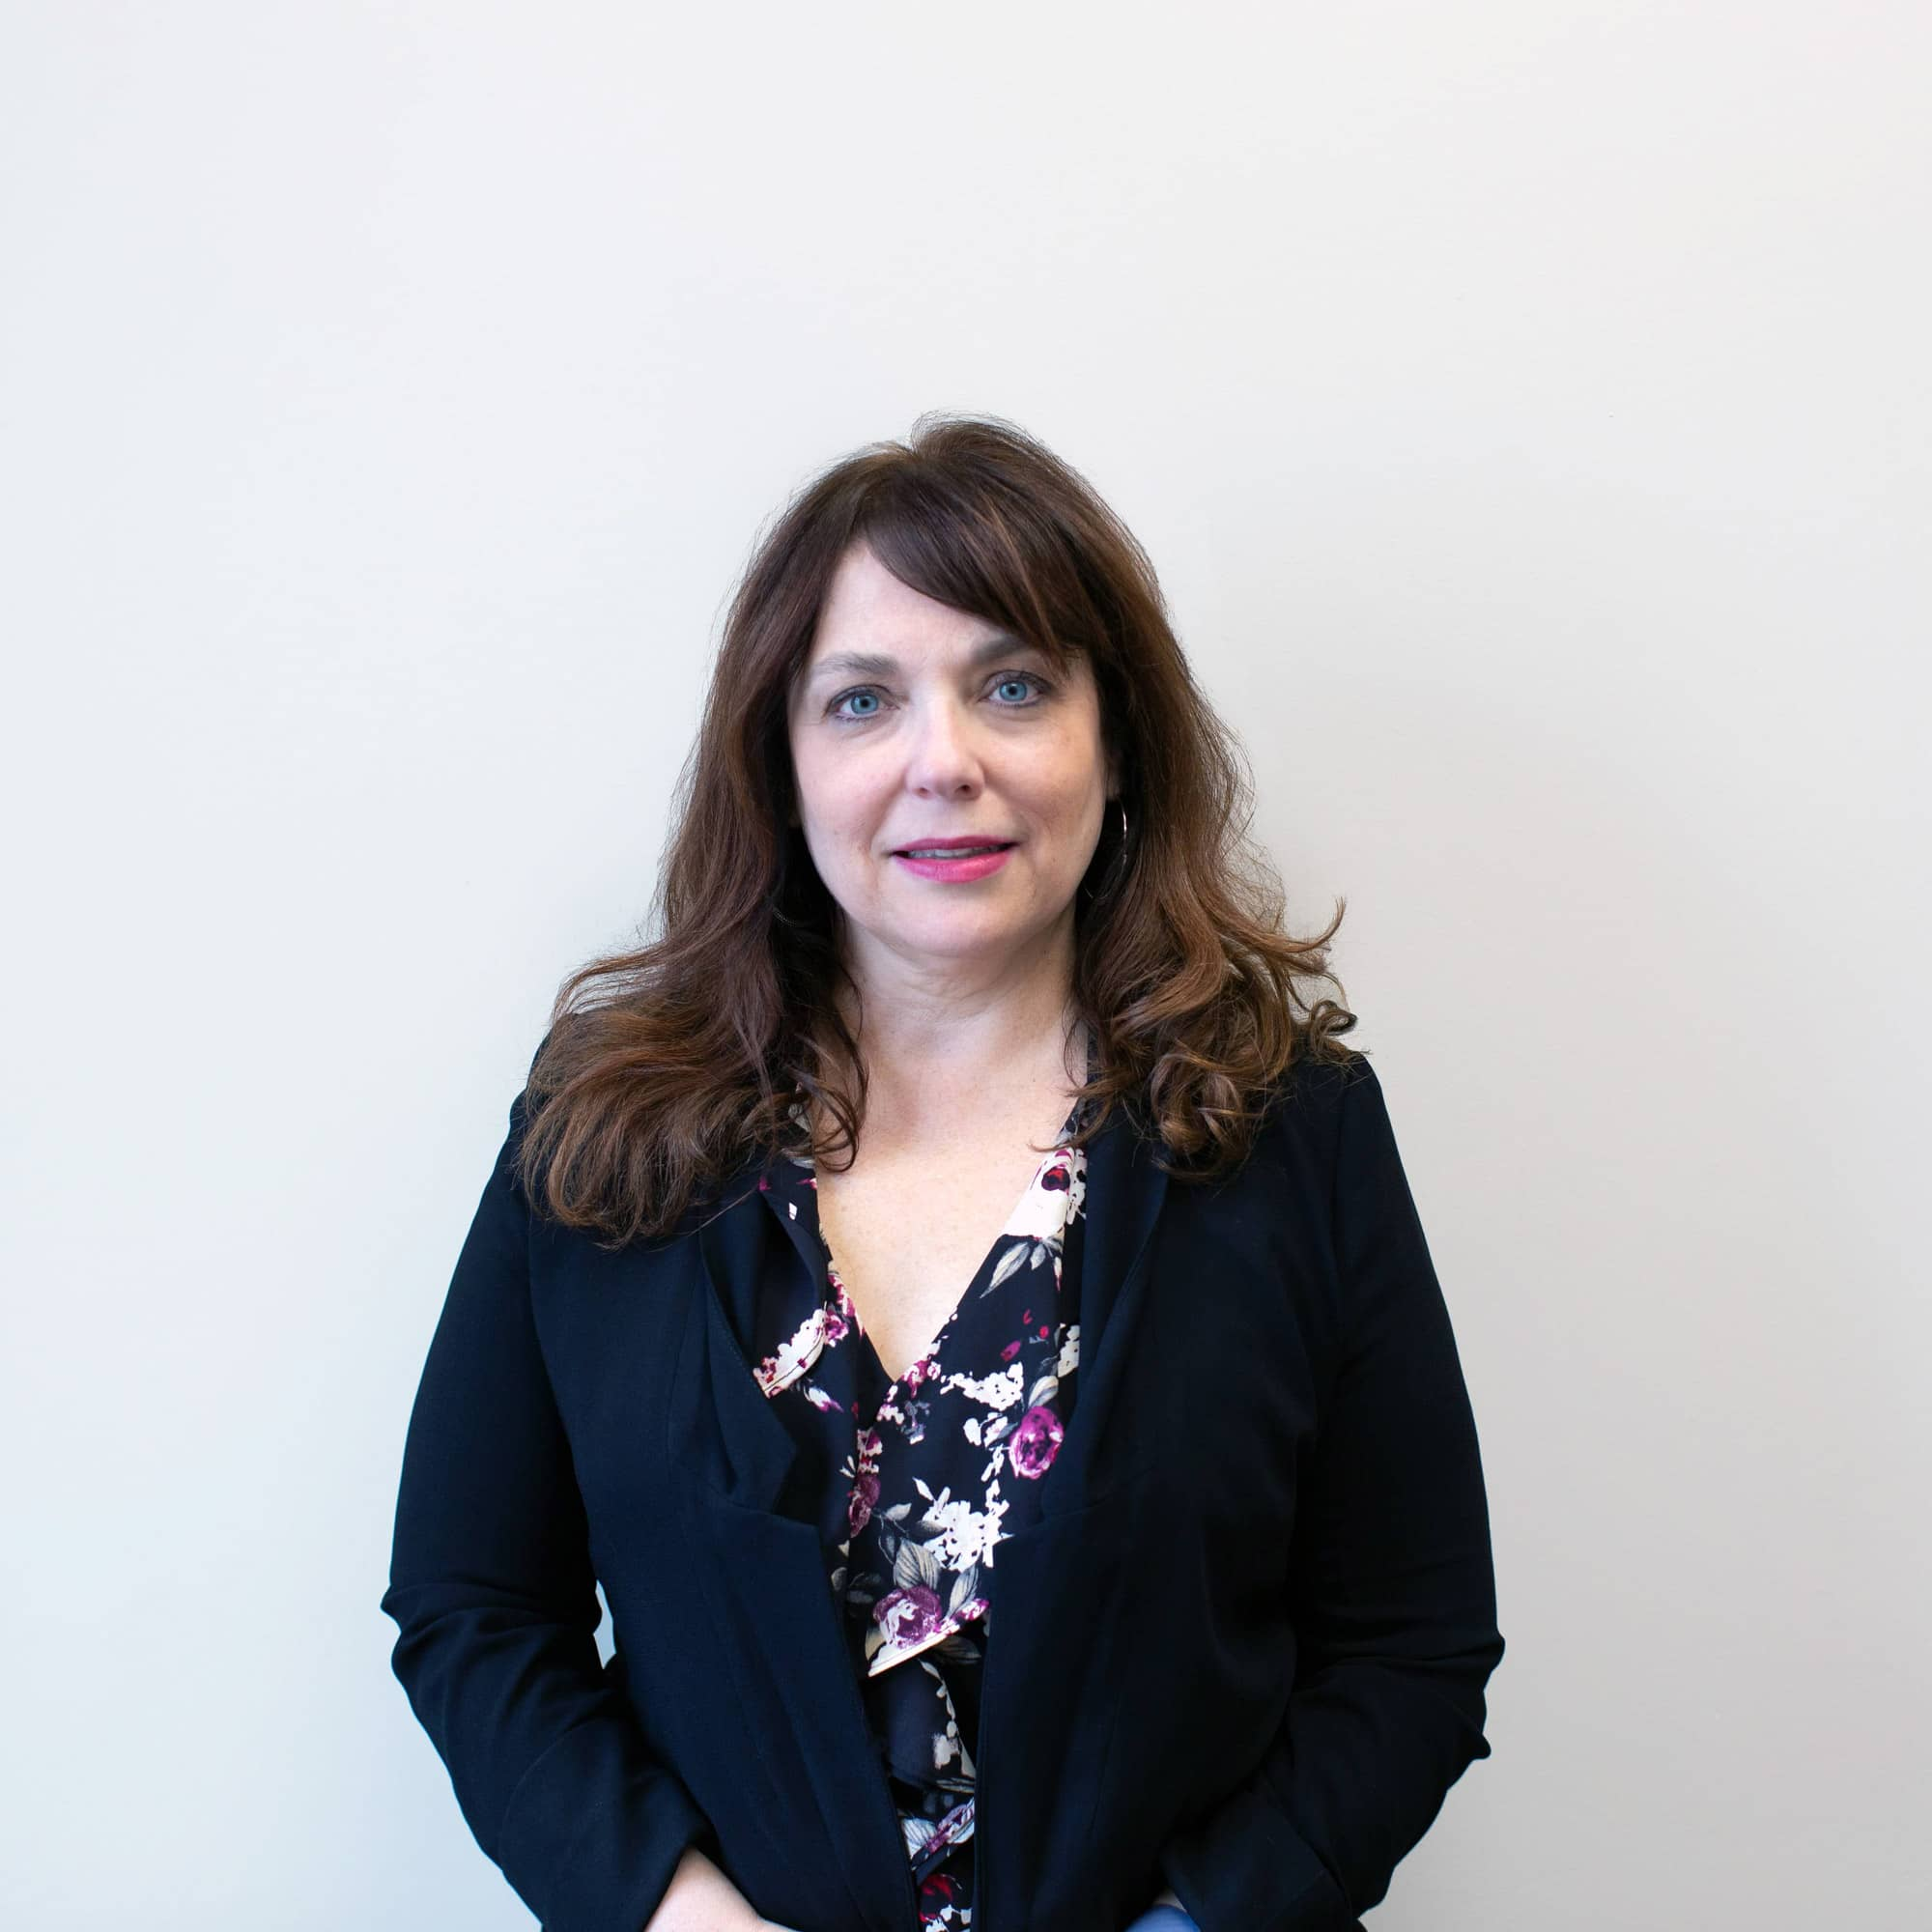 Peggy Reilly Office Manager   Peggy has been a proud member of the Gershenzon Dental Team since 1990, serving as our beloved Office Manager. She enjoys being part of an office that exemplifies excellence, professionalism and a warm staff who go above and beyond for our patients.